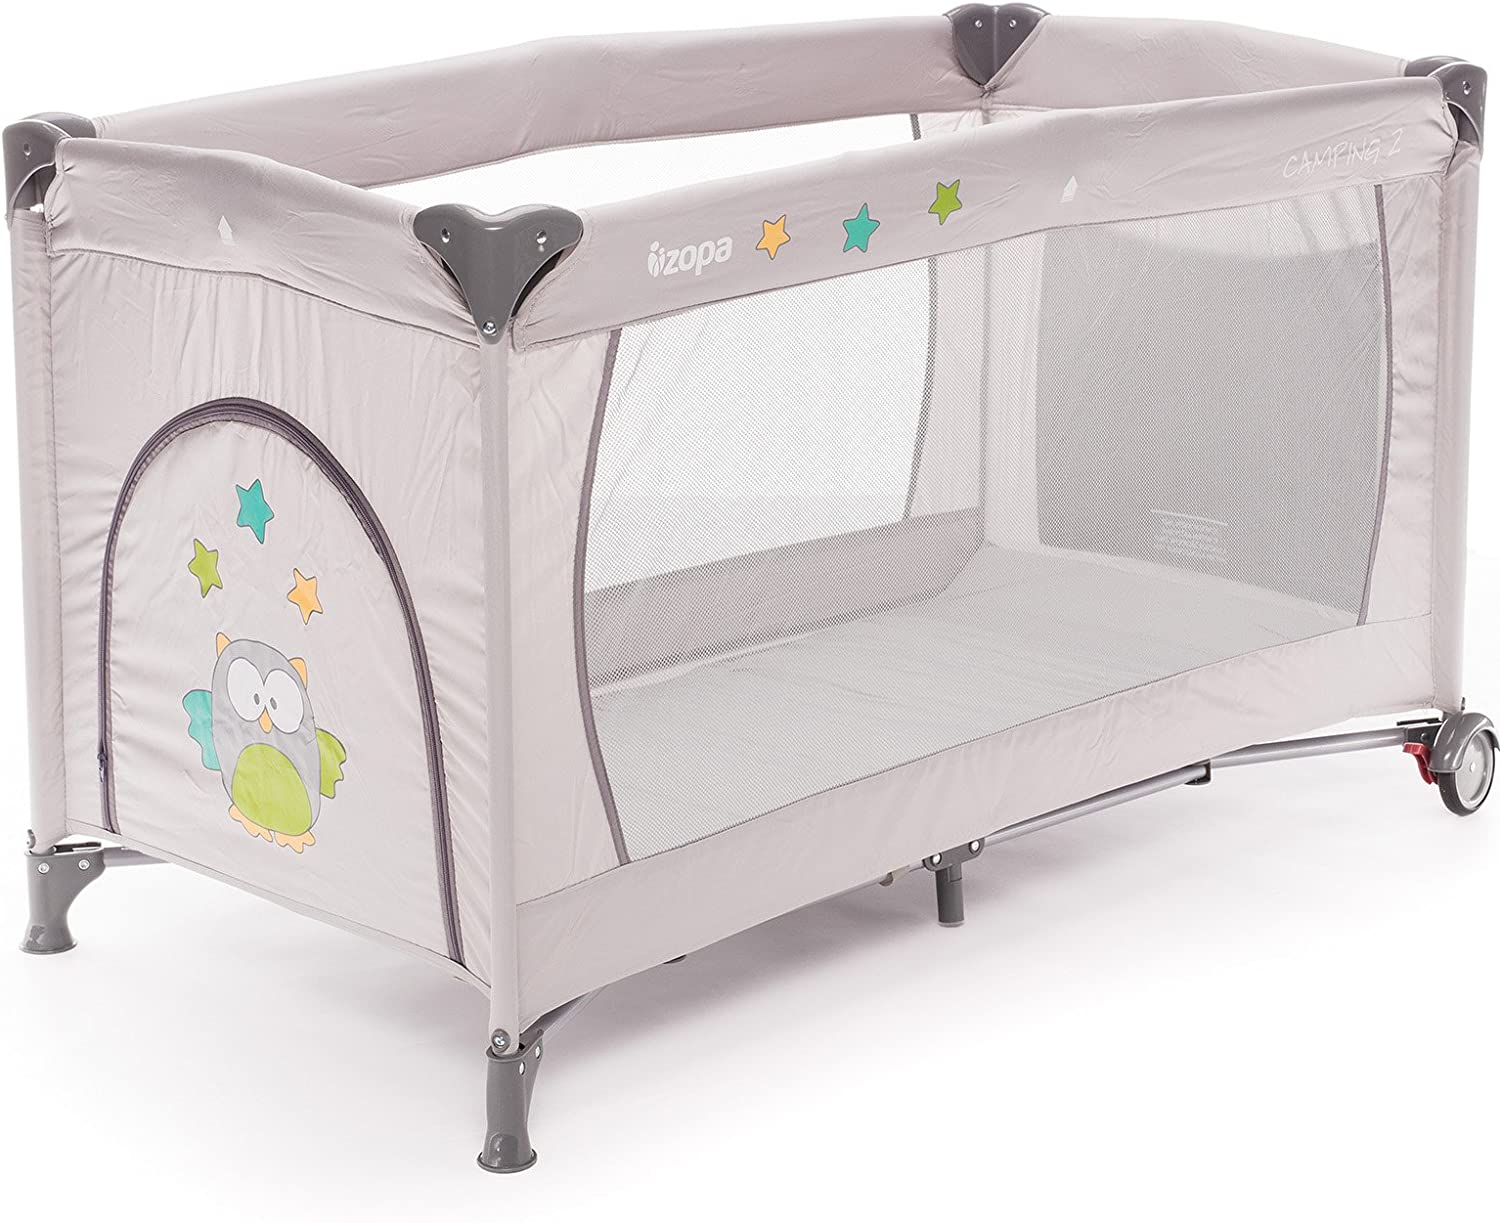 from Birth to 15 kg Moolino Fun Travel Cot 125 x 70 cm Carry Bag and Side Opening Grey Folding Mattress Multicolour